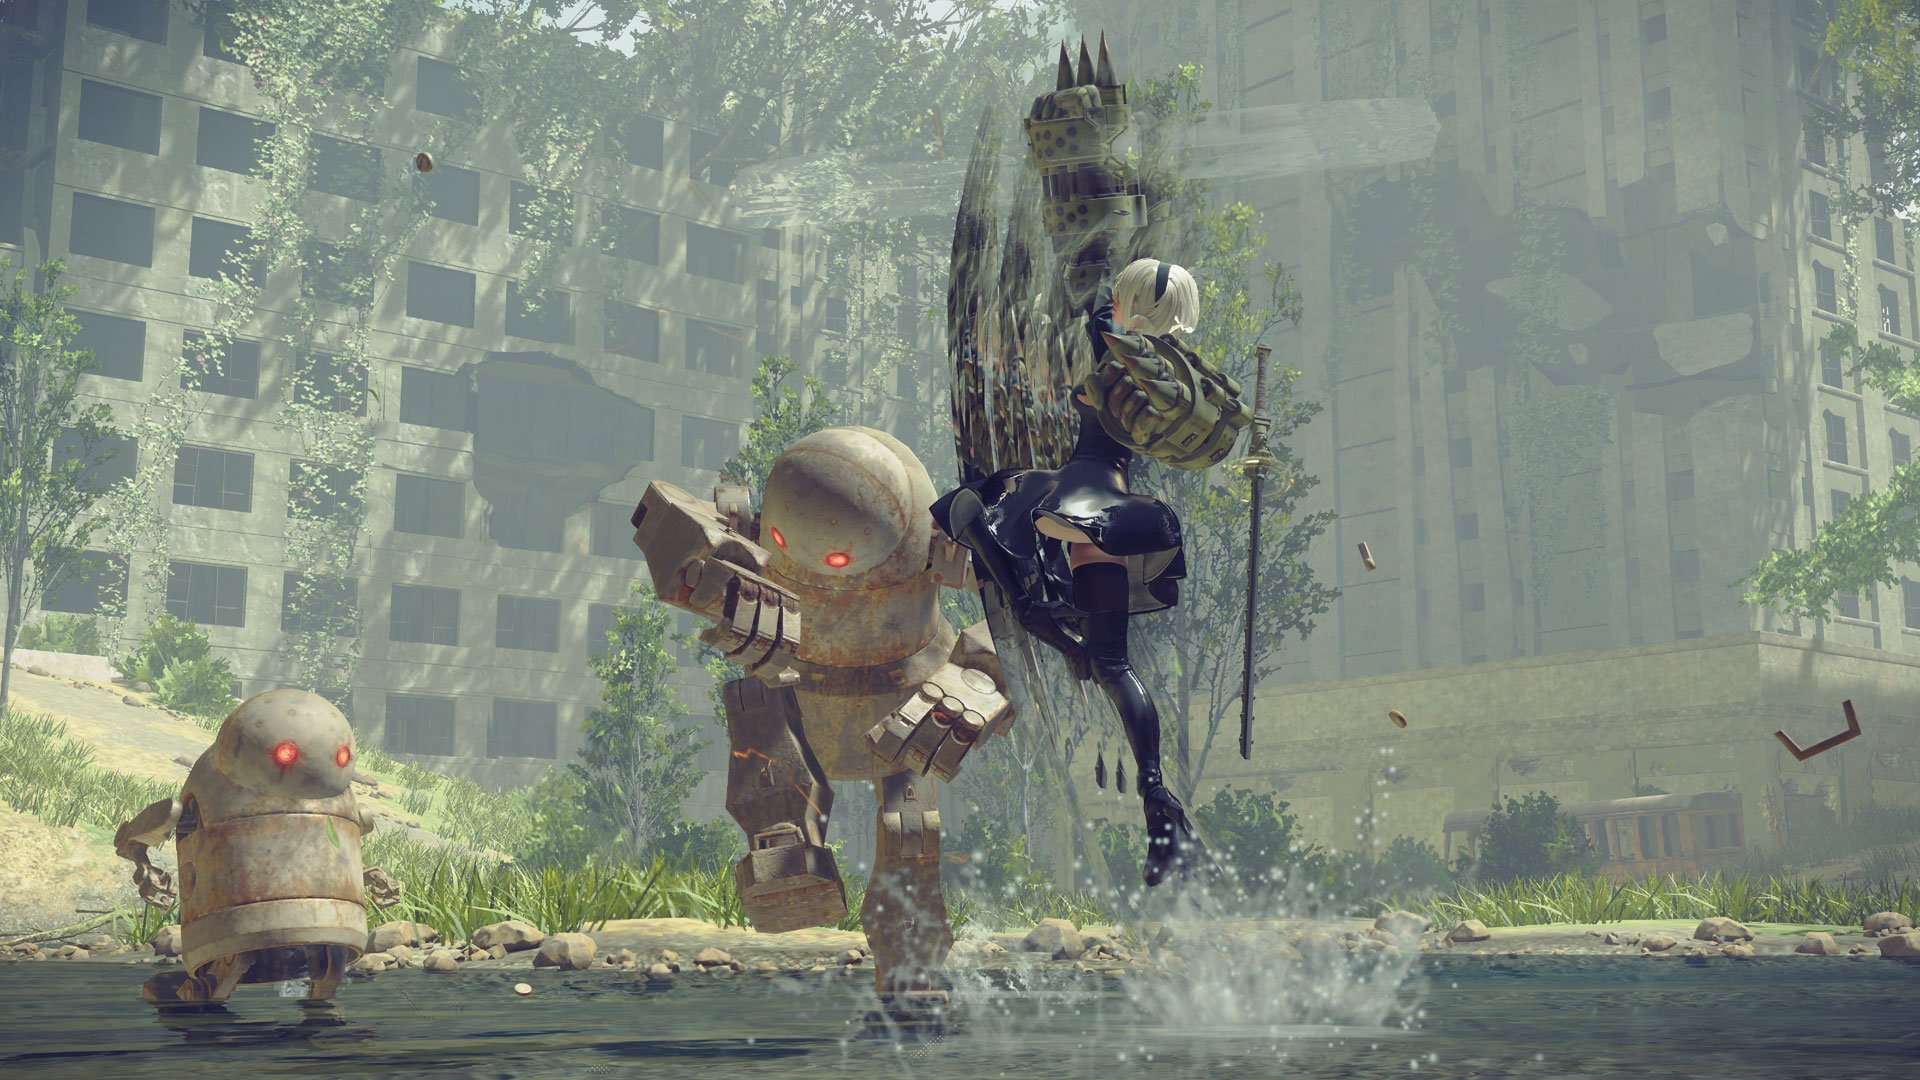 Tell me you don't now wish Nier were about dancing with robots.